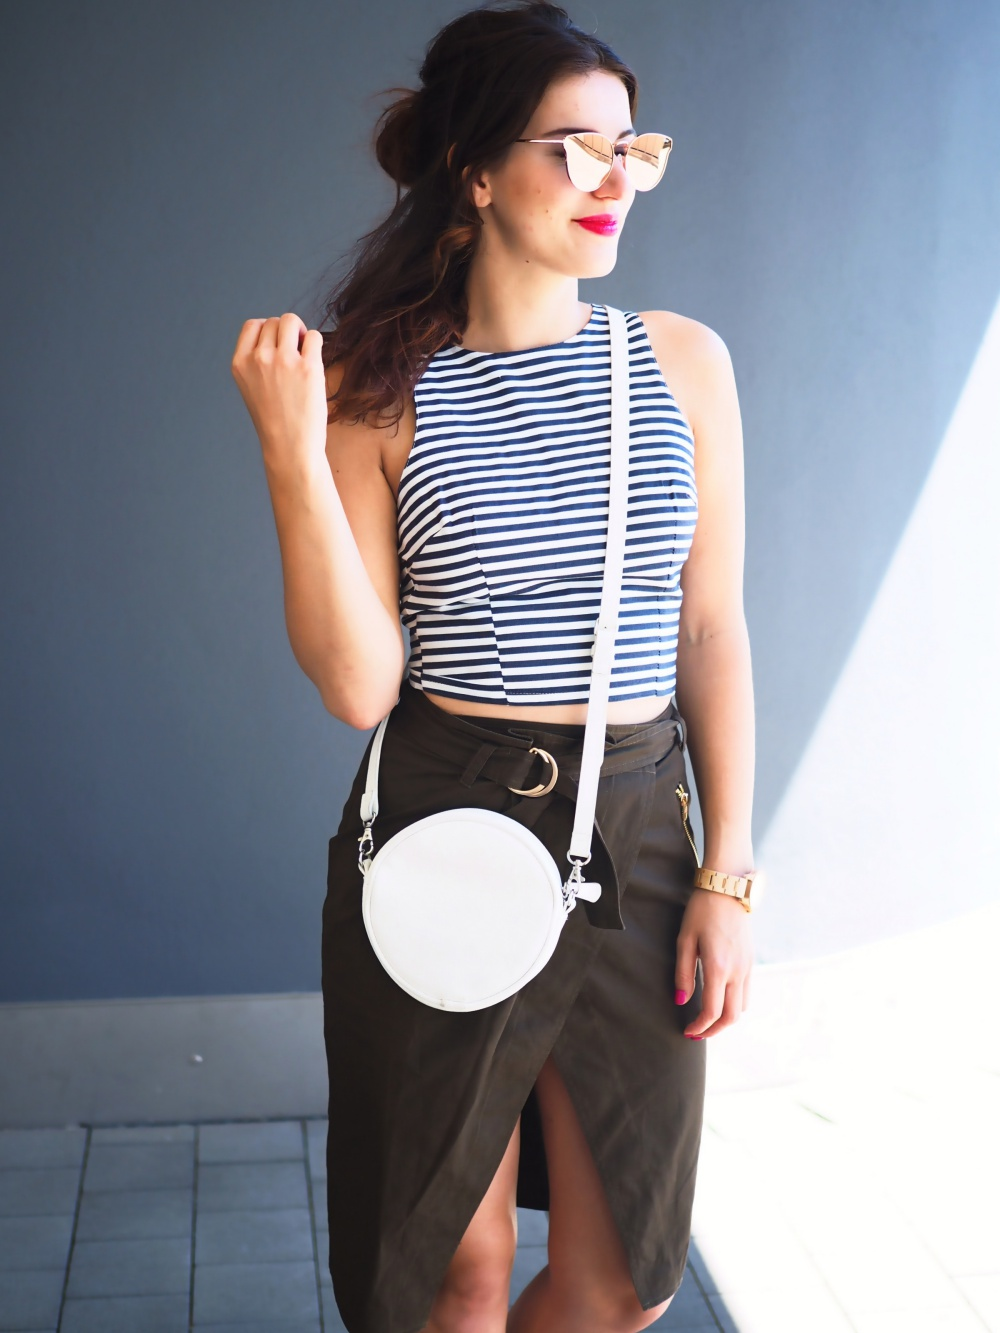 asos-utility-skirt-summer-streetstyle-crop-cropped-shirt-top-stripes-monki-bag-quay-all-my-love-copper-mirrored-shades-fashion-style-details